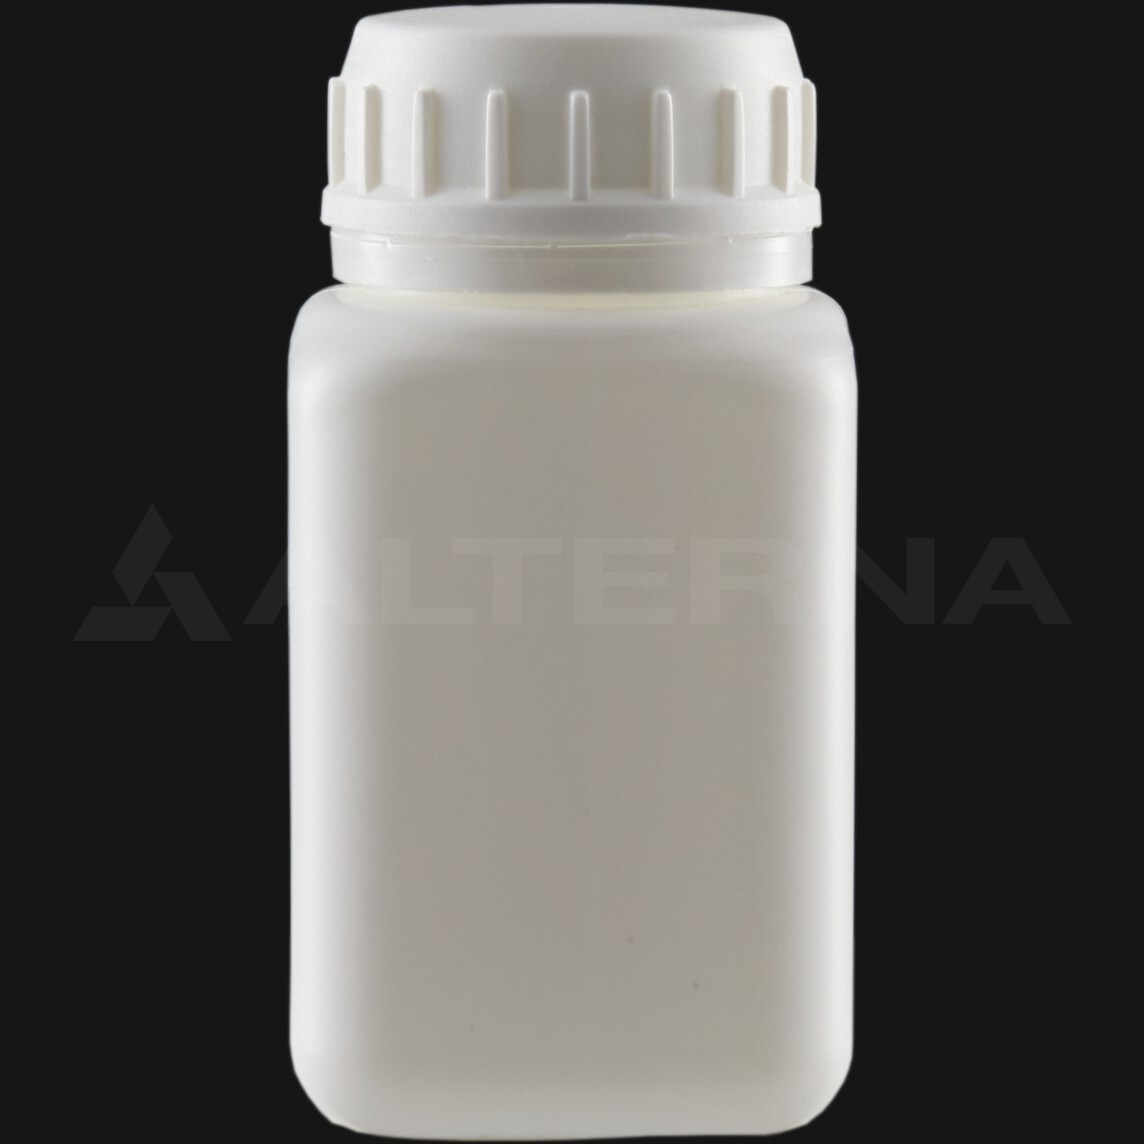 100 ml HDPE Square Bottle with 38 mm Foam Seal Secure Cap